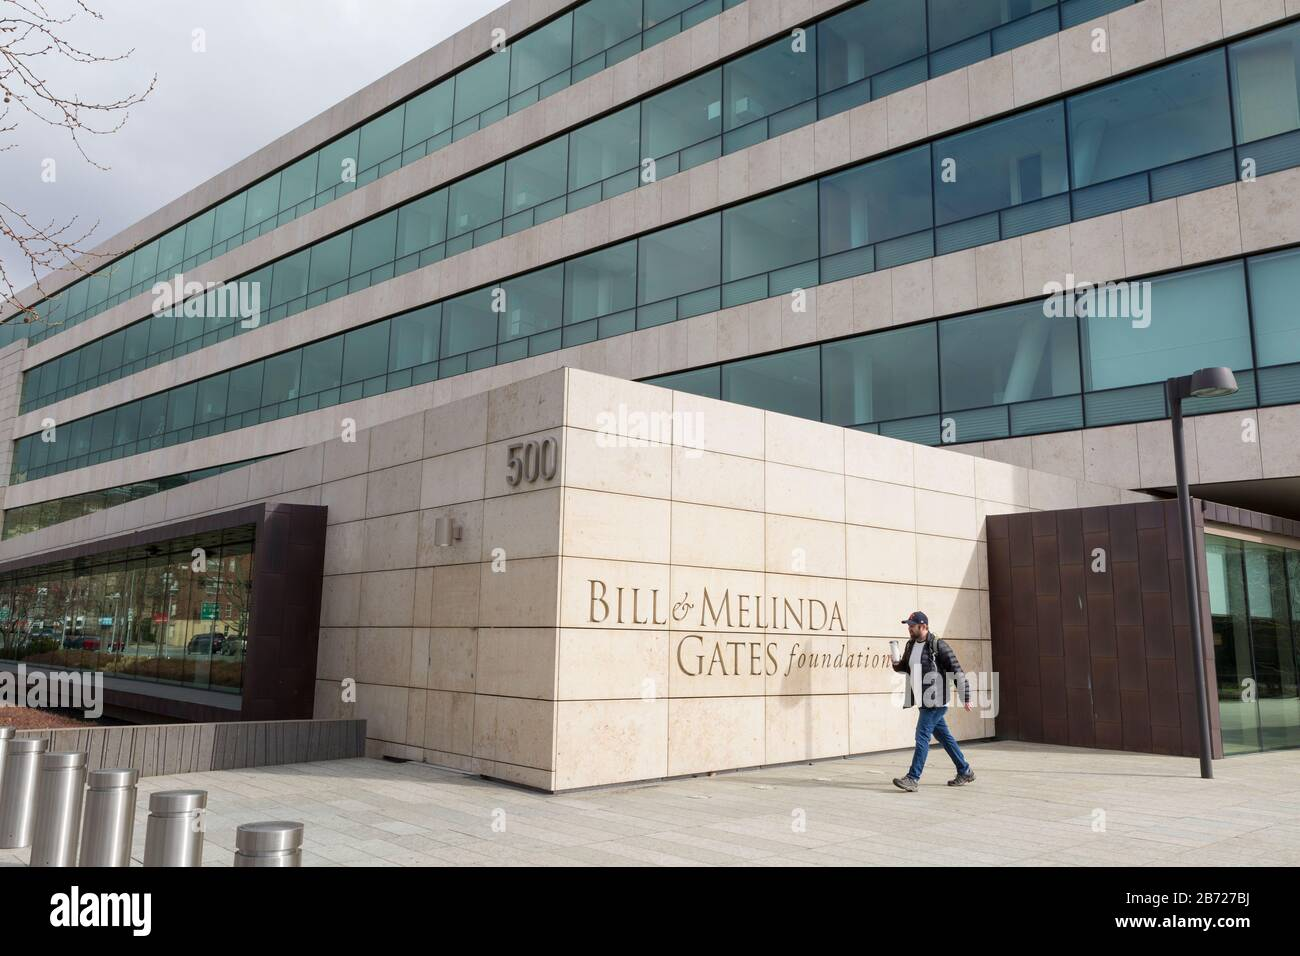 Bill And Melinda Gates Foundation High Resolution Stock Photography and  Images - Alamy